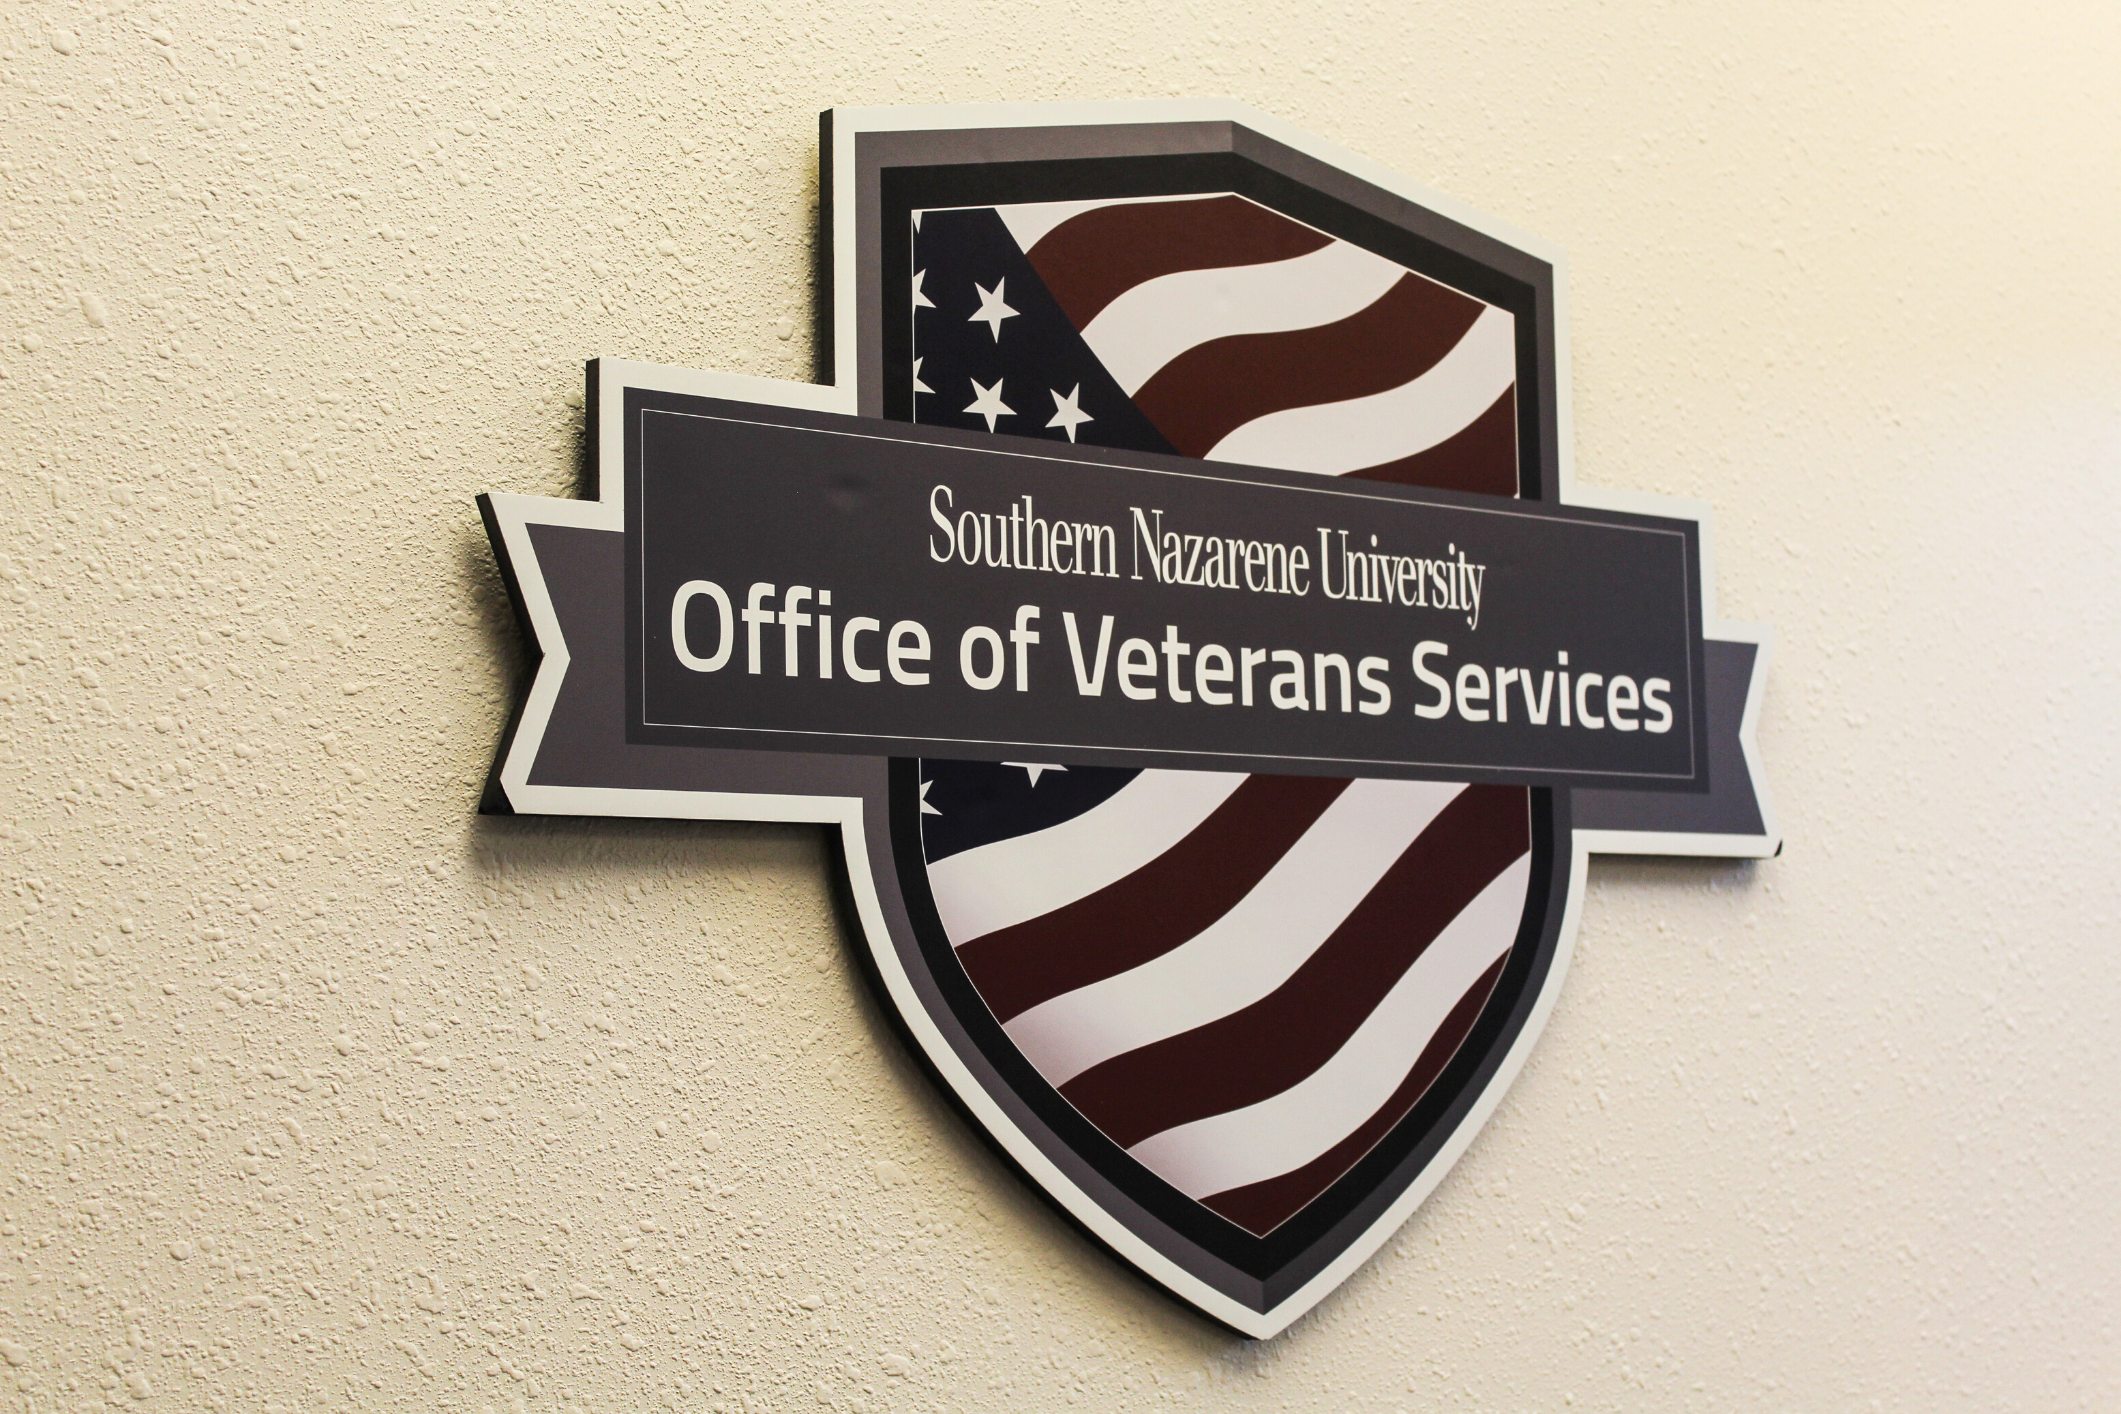 Southern Nazarene University Office of Veteran Services